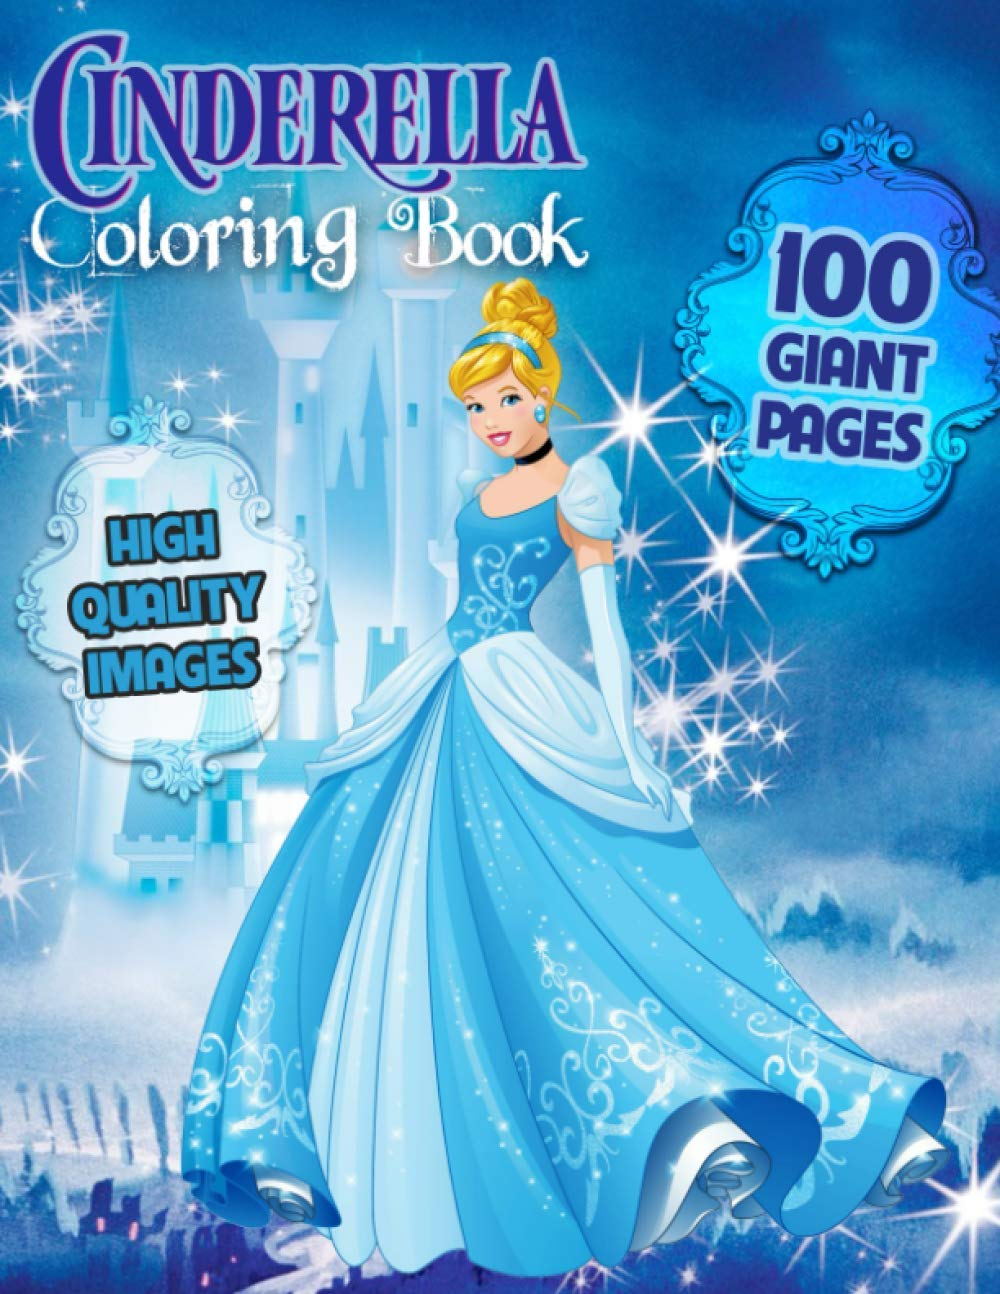 Cinderella Coloring Book Great Coloring Book For Kids And Fans 100 Giant Pages To Coloring 50 High Quality Images And Son Father 9798565142044 Amazon Com Books